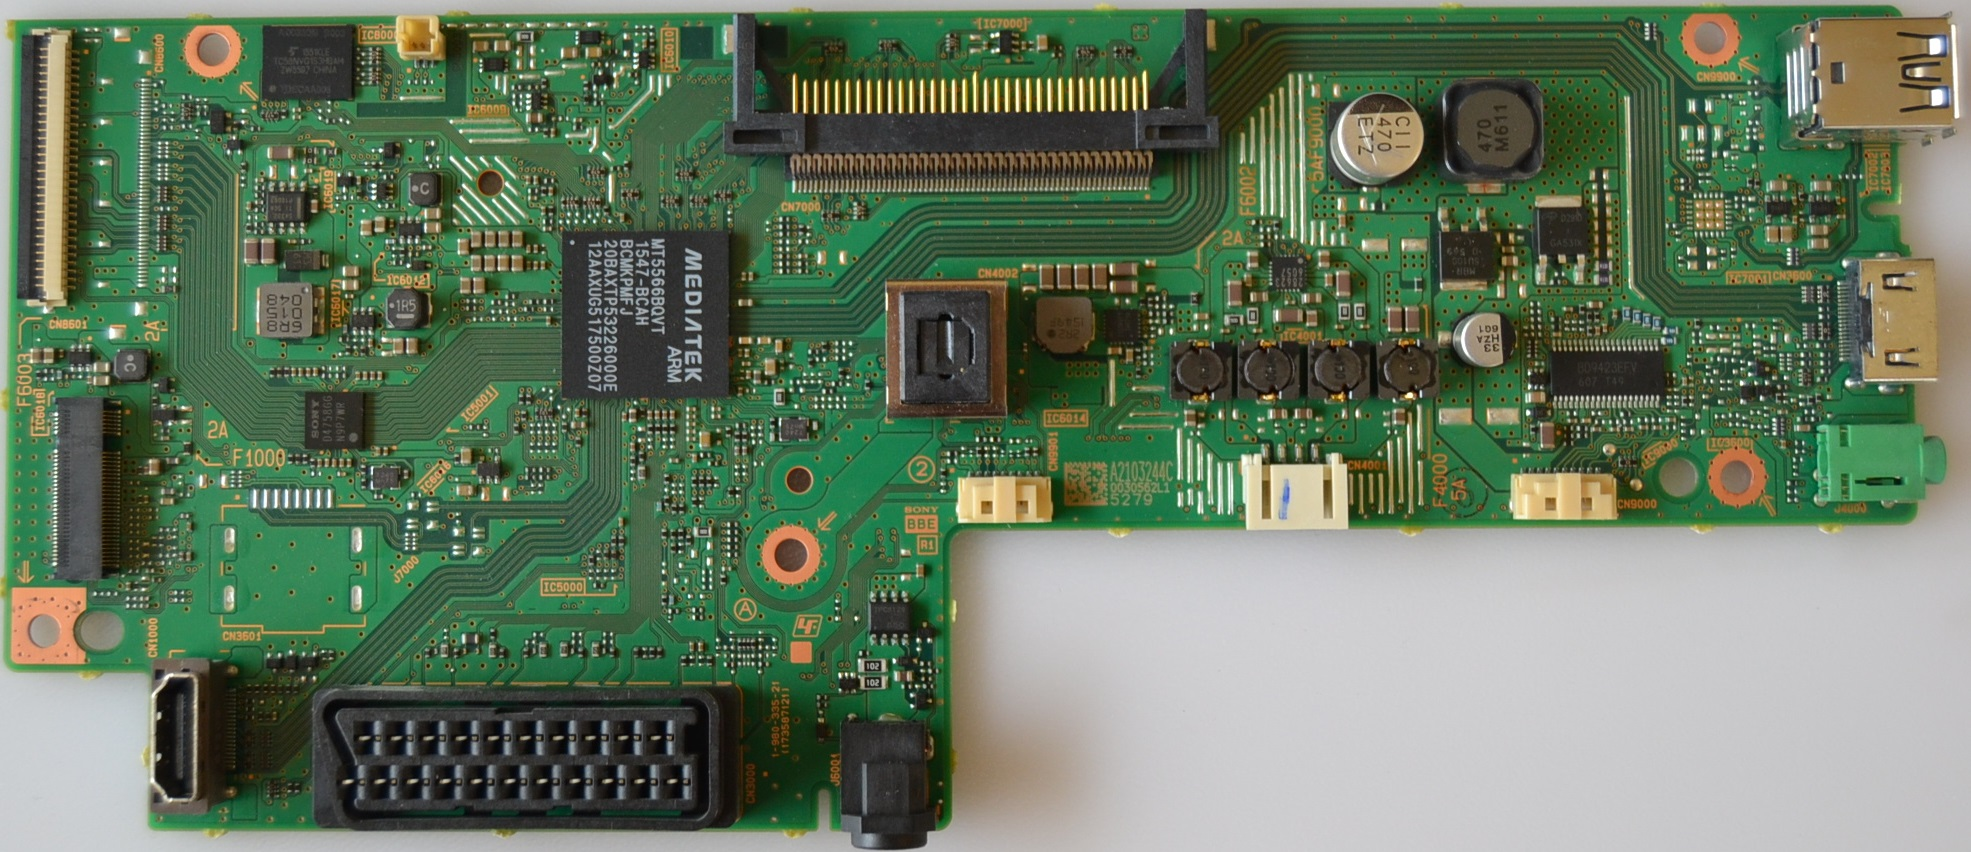 MB/SONY/32RD430 MAIN BOARD ,1-980-335-21,173587121,  for, SONY KDL-32RD430,